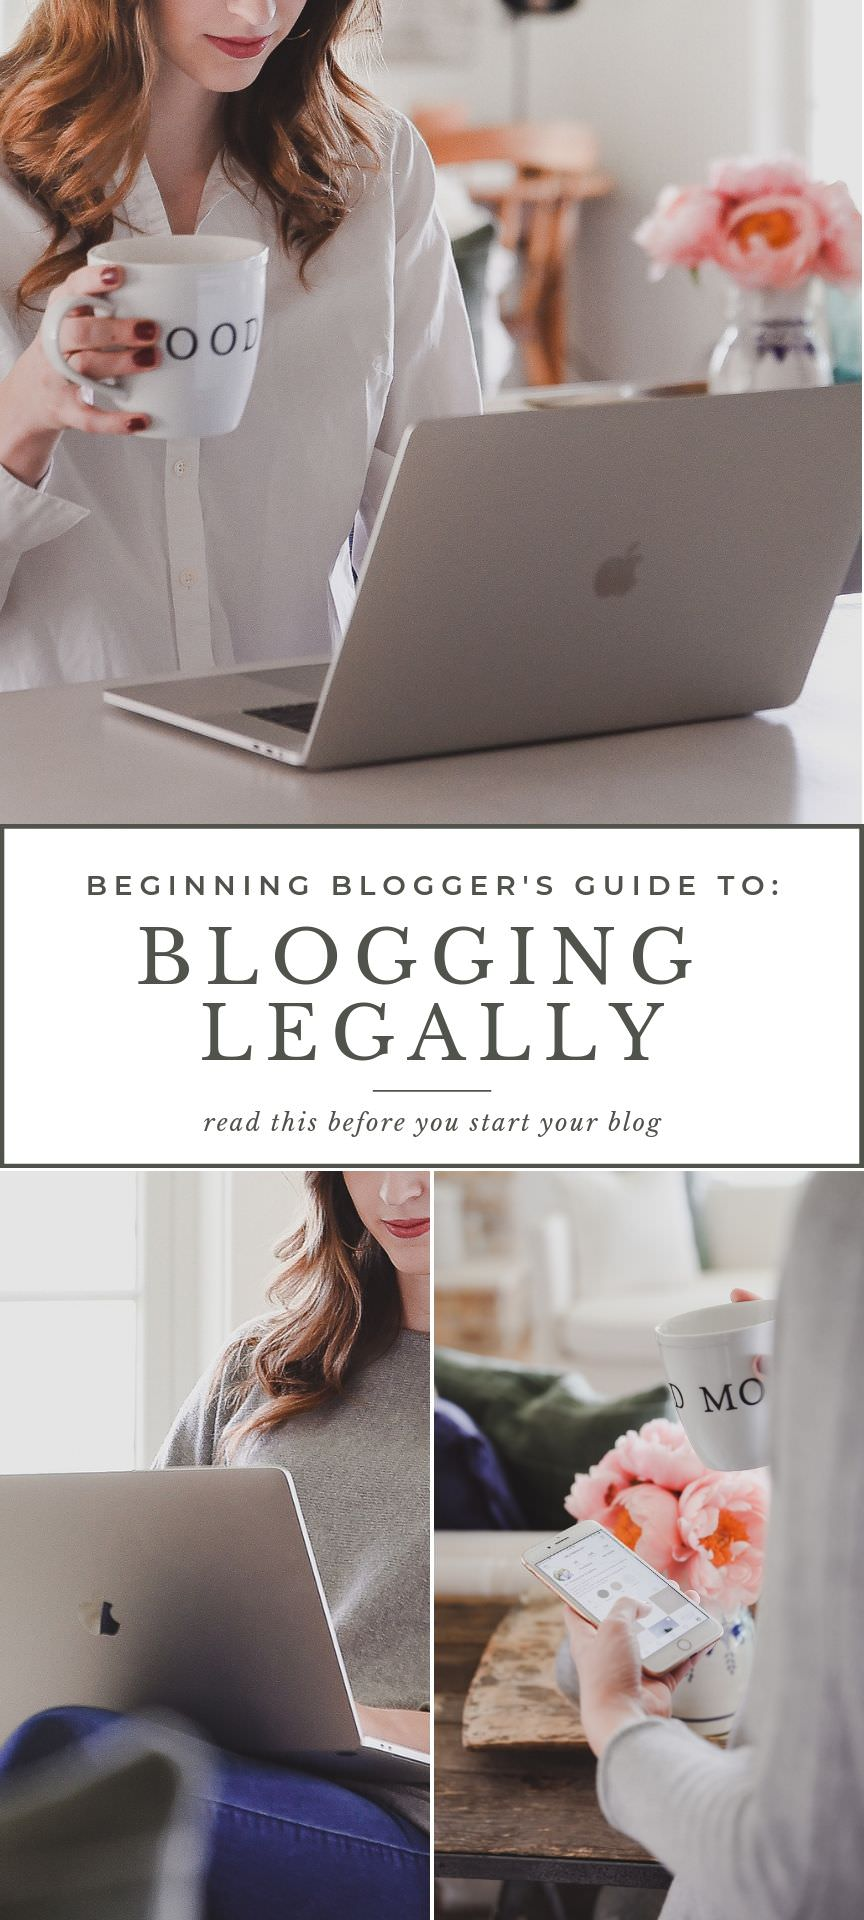 What you need on your website to make sure your blog is legal! #blogging #smallbusiness #entrepreneur  #boxwoodavenue